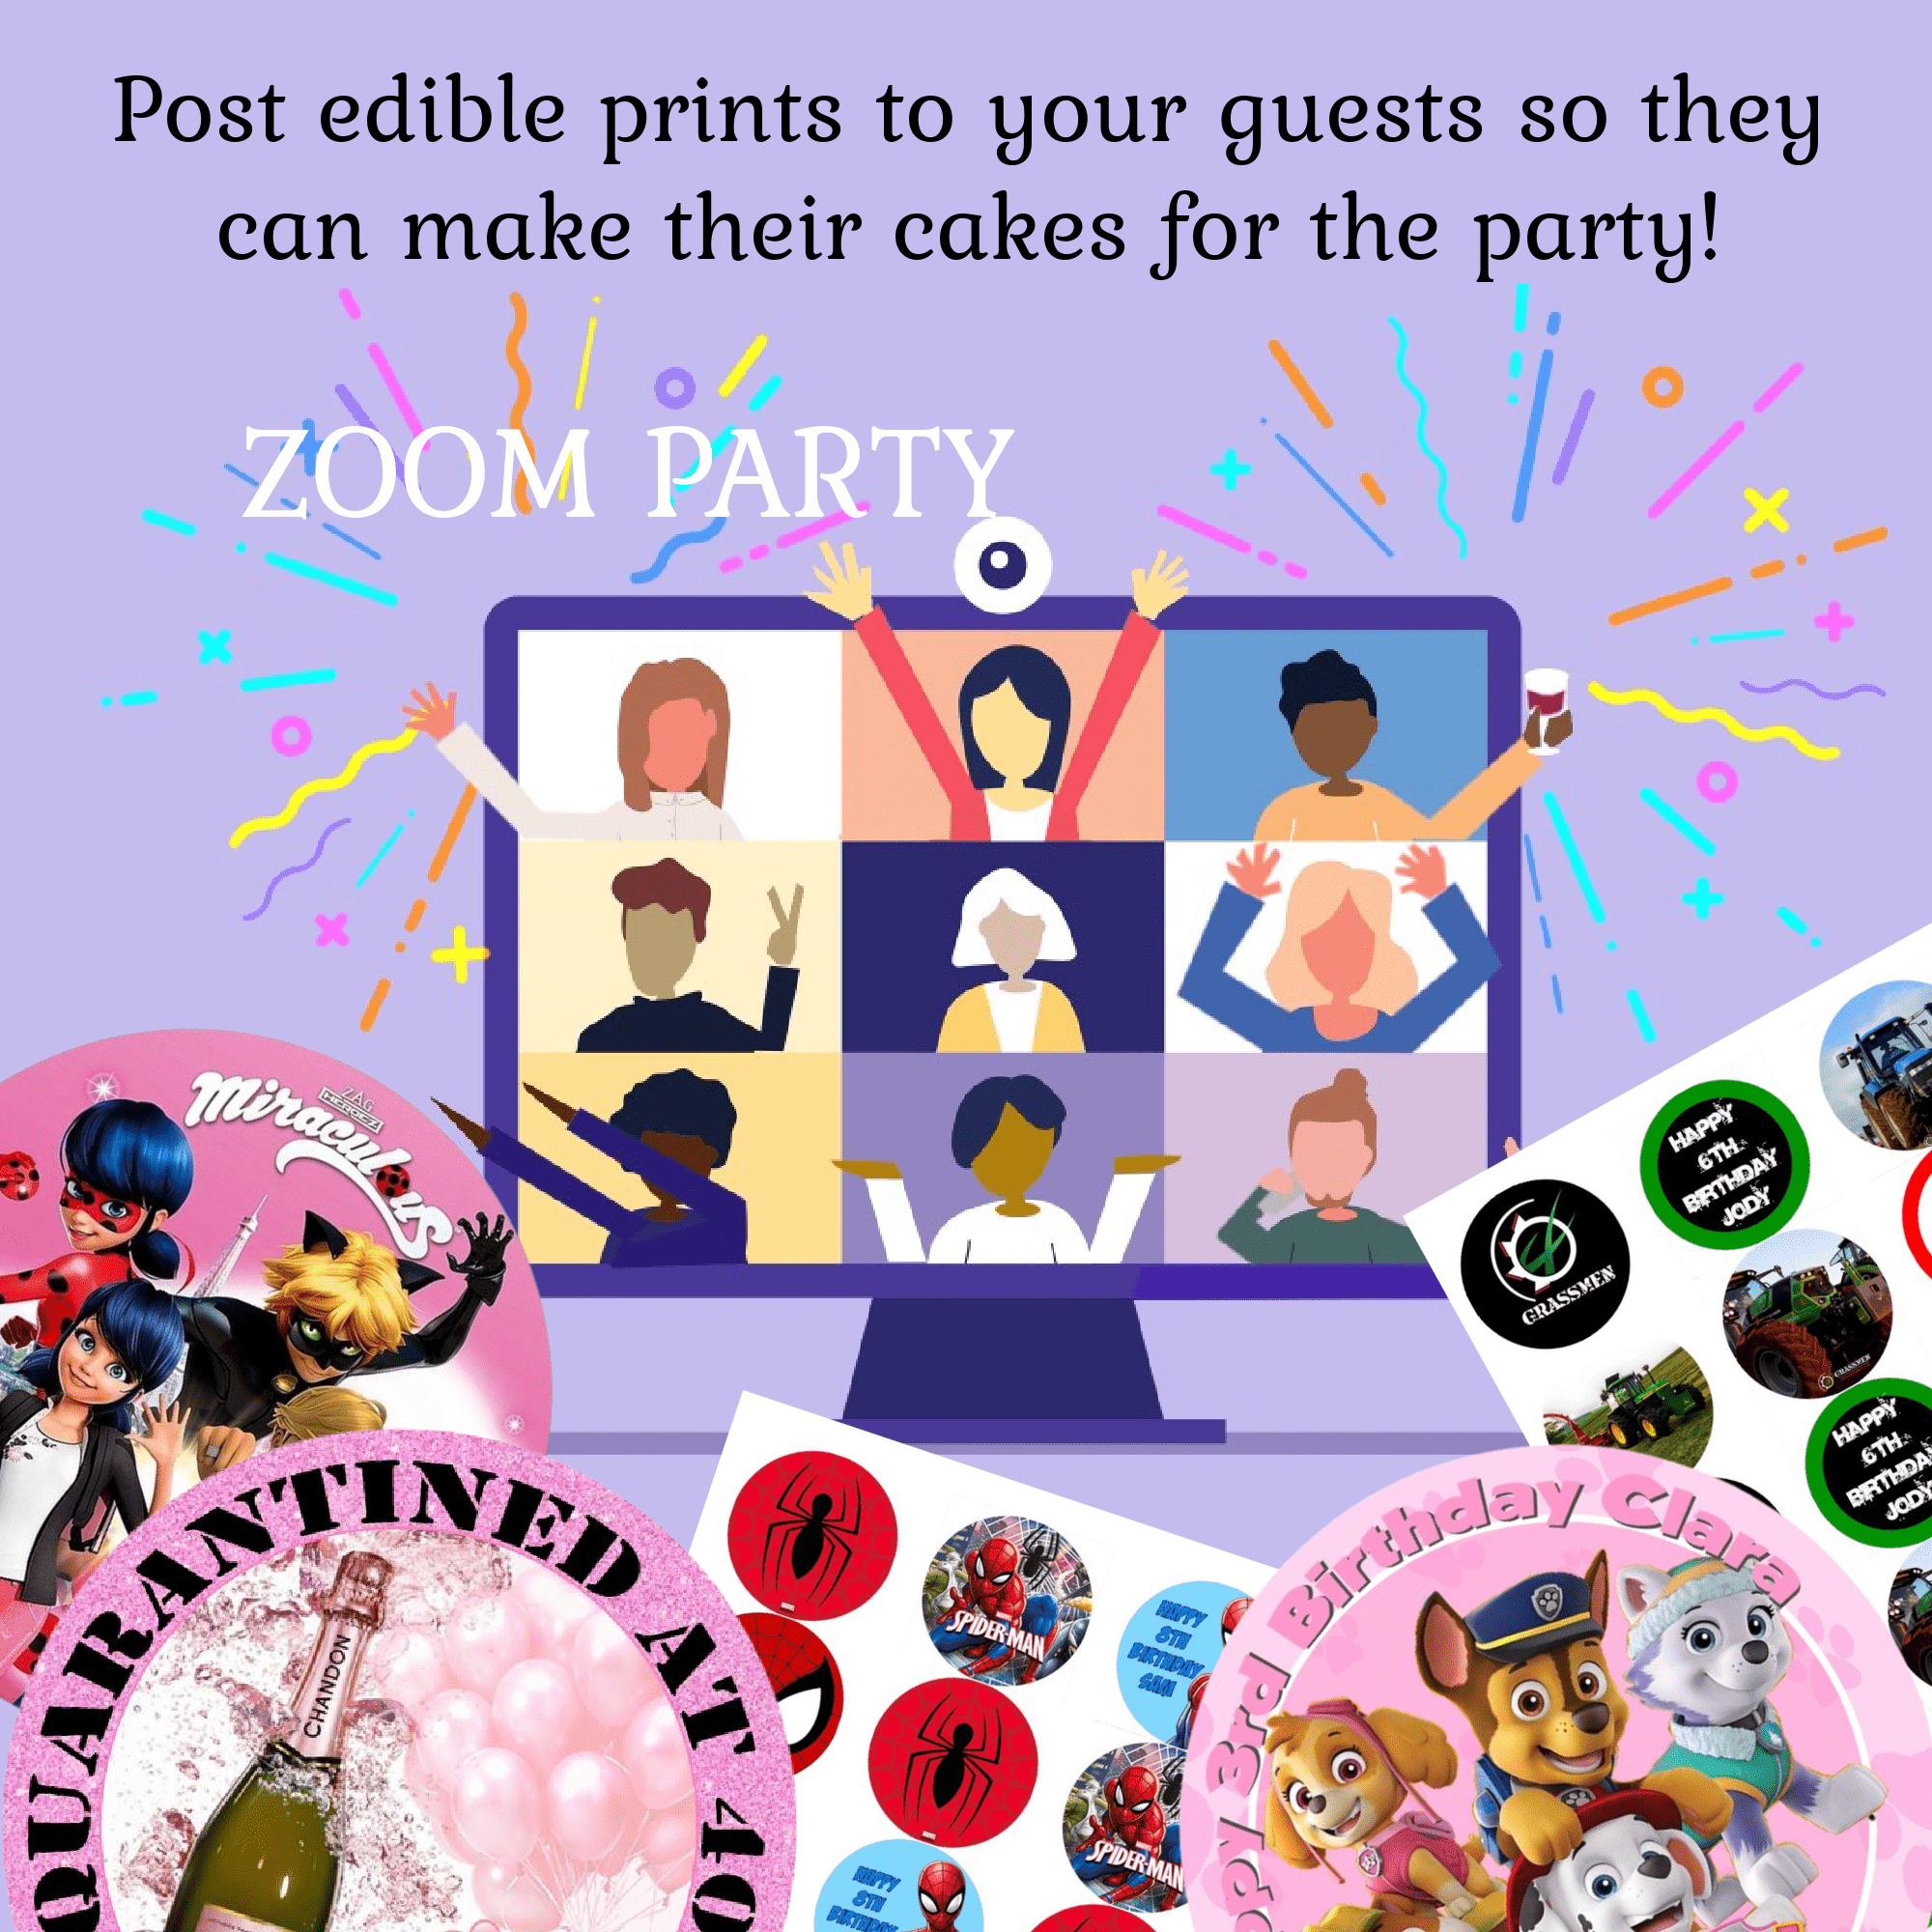 Send Edible prints to your zoom party guests